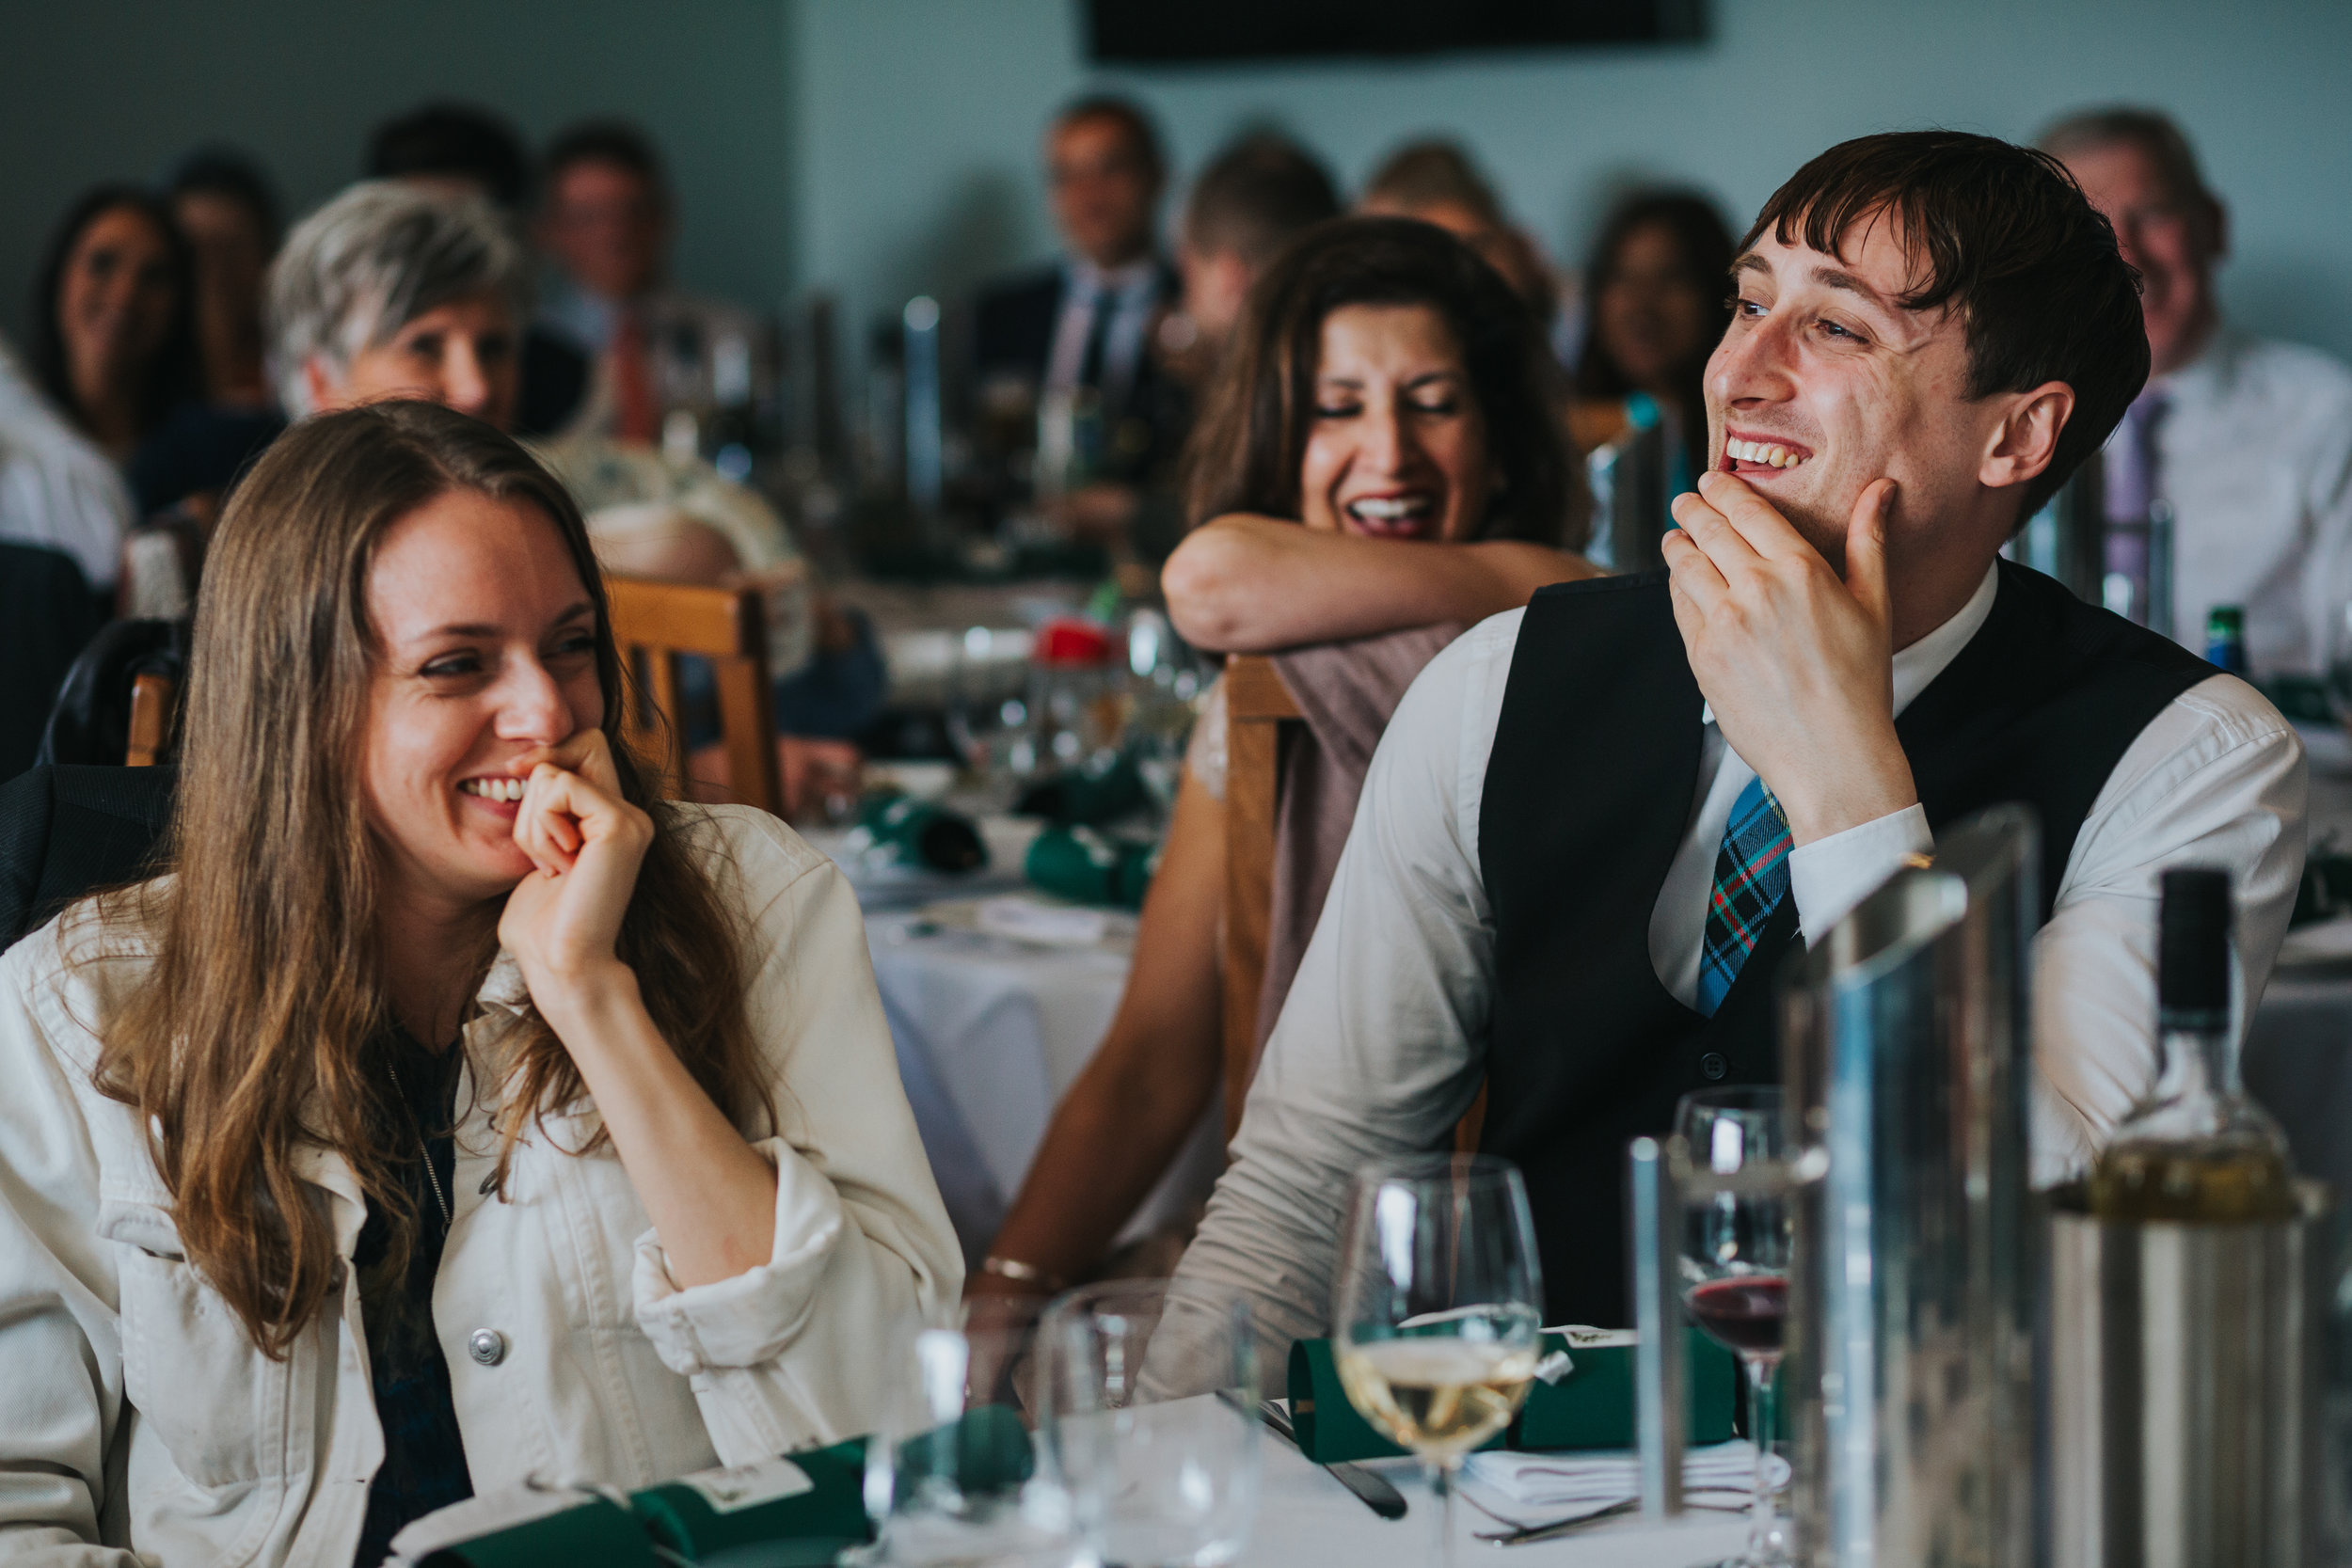 Wedding guests laugh at the grooms speech.